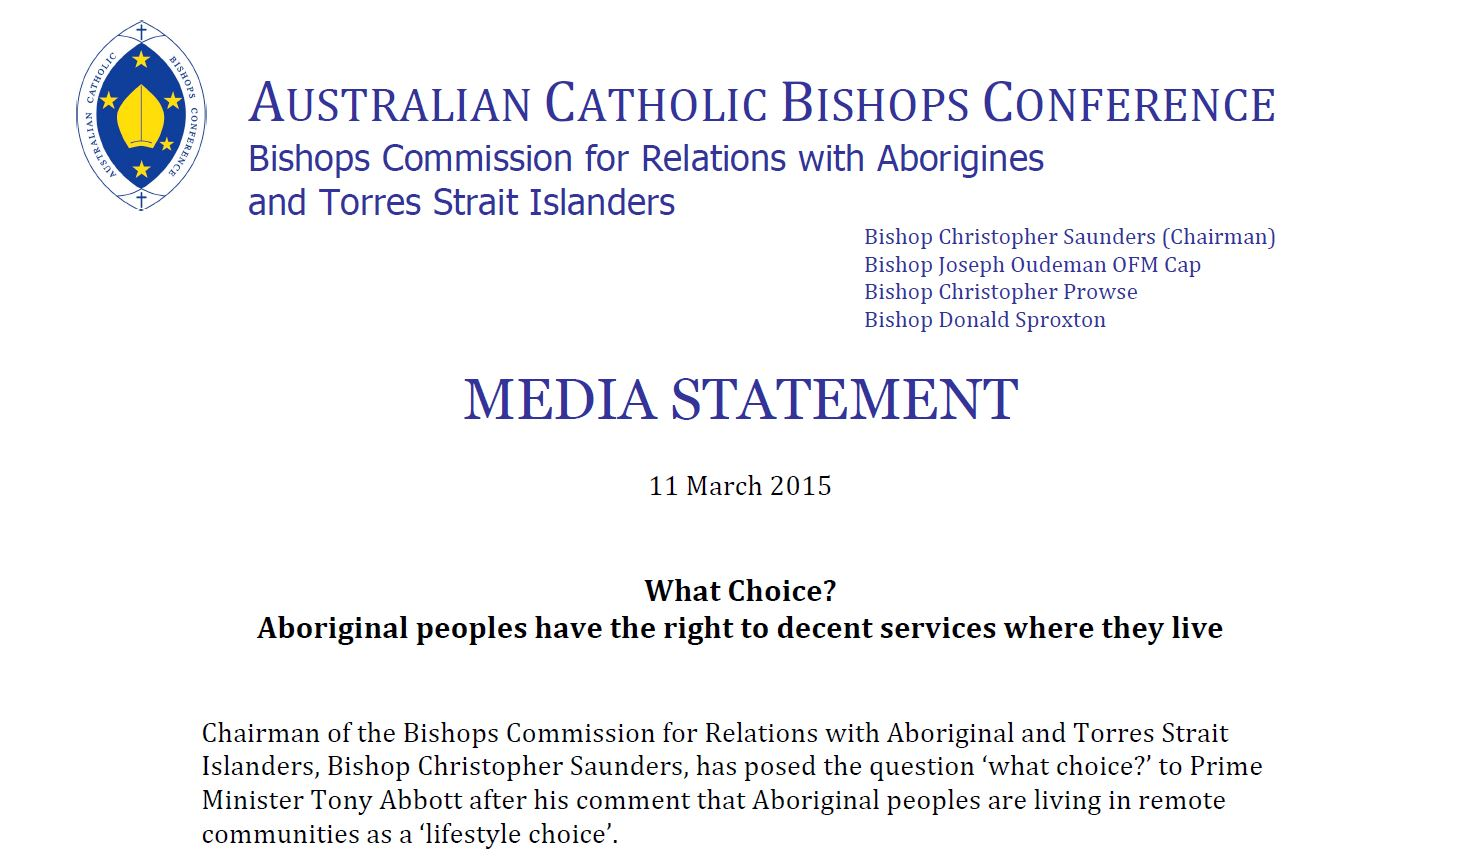 ACBC Media Statement - Aborigines